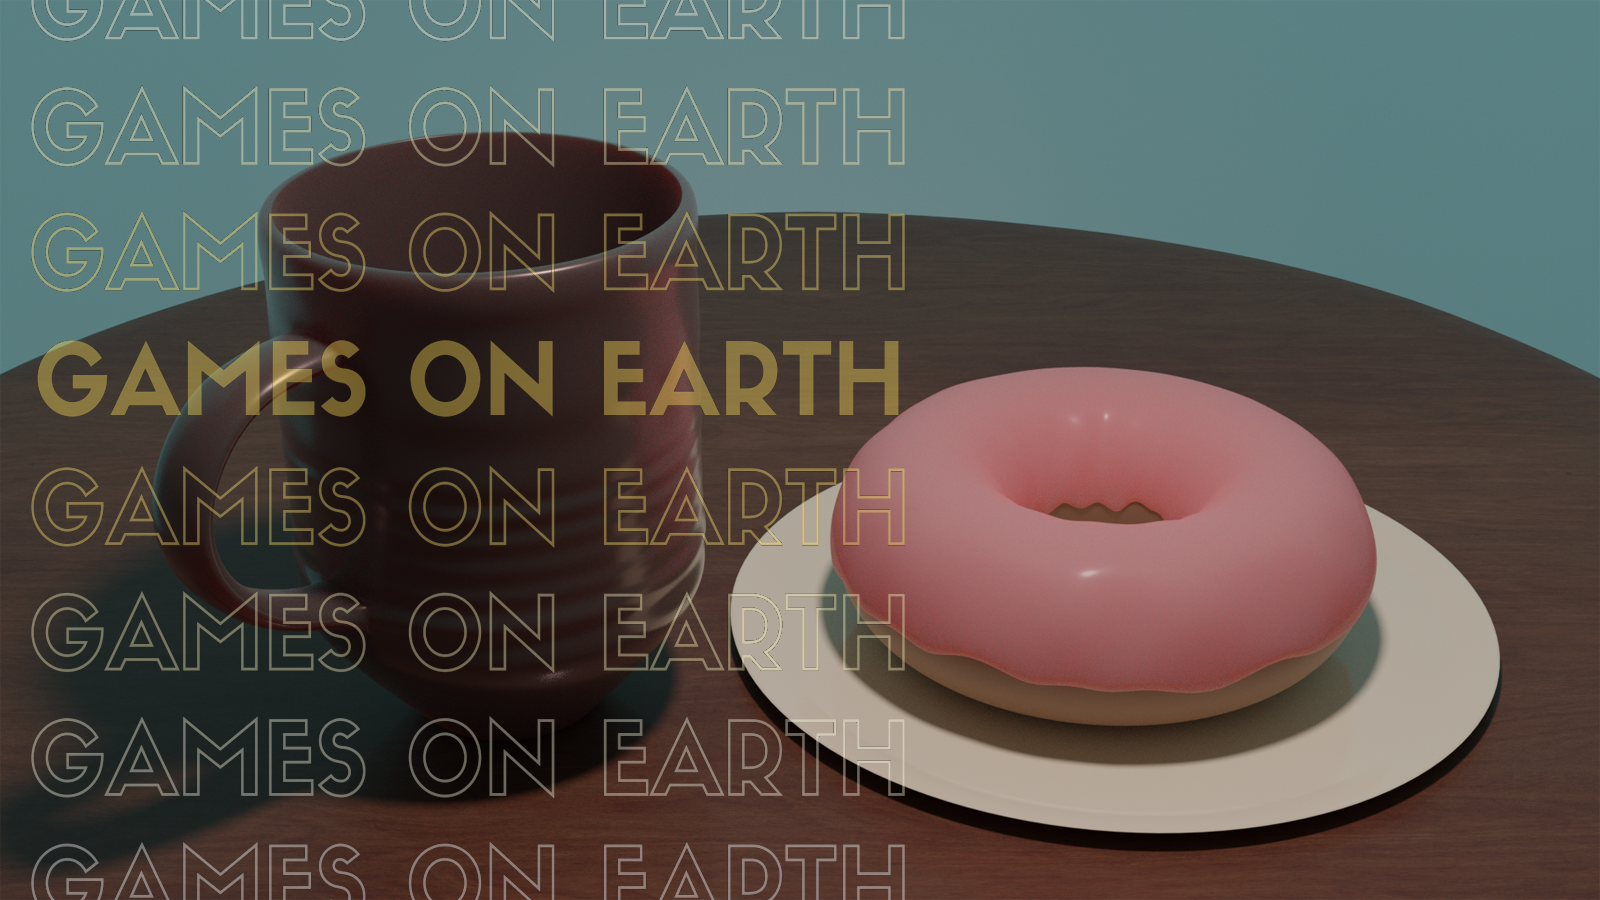 This week we're showing off our first official 3d artwork created by Bradley Bitcheno. BEHOLD THE DONUT! Look into its reflective glaze and take a moment to consider the long and storied history of our species. Our ancestors climbed and fell from trees, with no thought of yeast or carbohydrates.  Now focus your attention on the coffee cup. Recall that tenth cup of coffee on that one weekend in 2005 where you stayed up for days slicing your way across Westfall...  Time is fleeting, listen to this podcast.